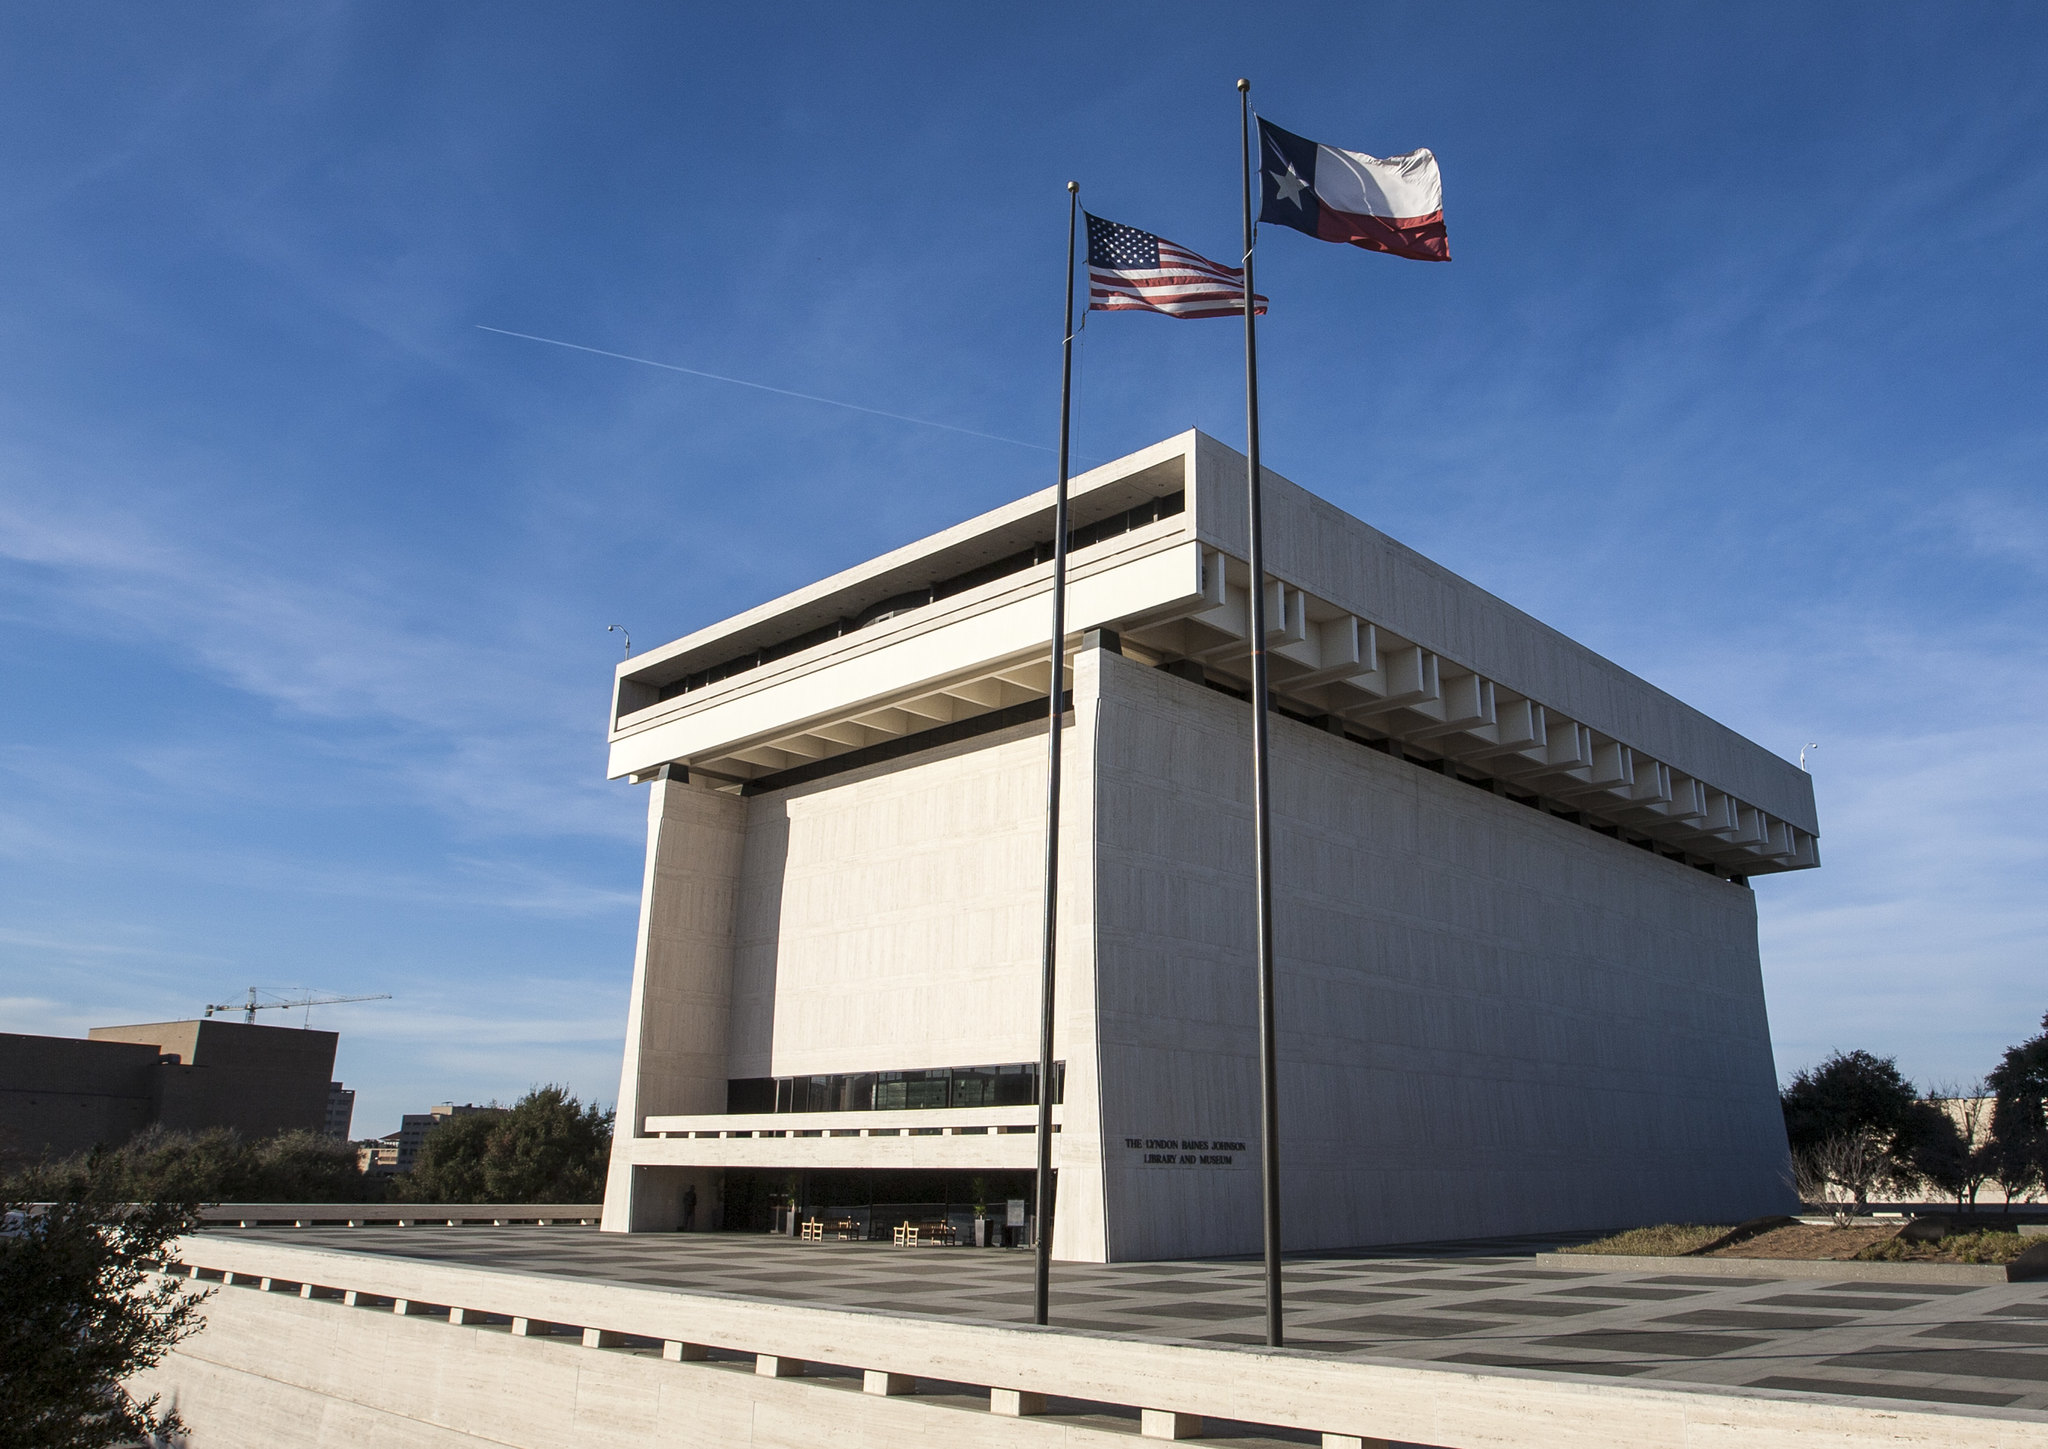 Popular Museum To Visit In Texas-LBJ Presidential Library, Austin